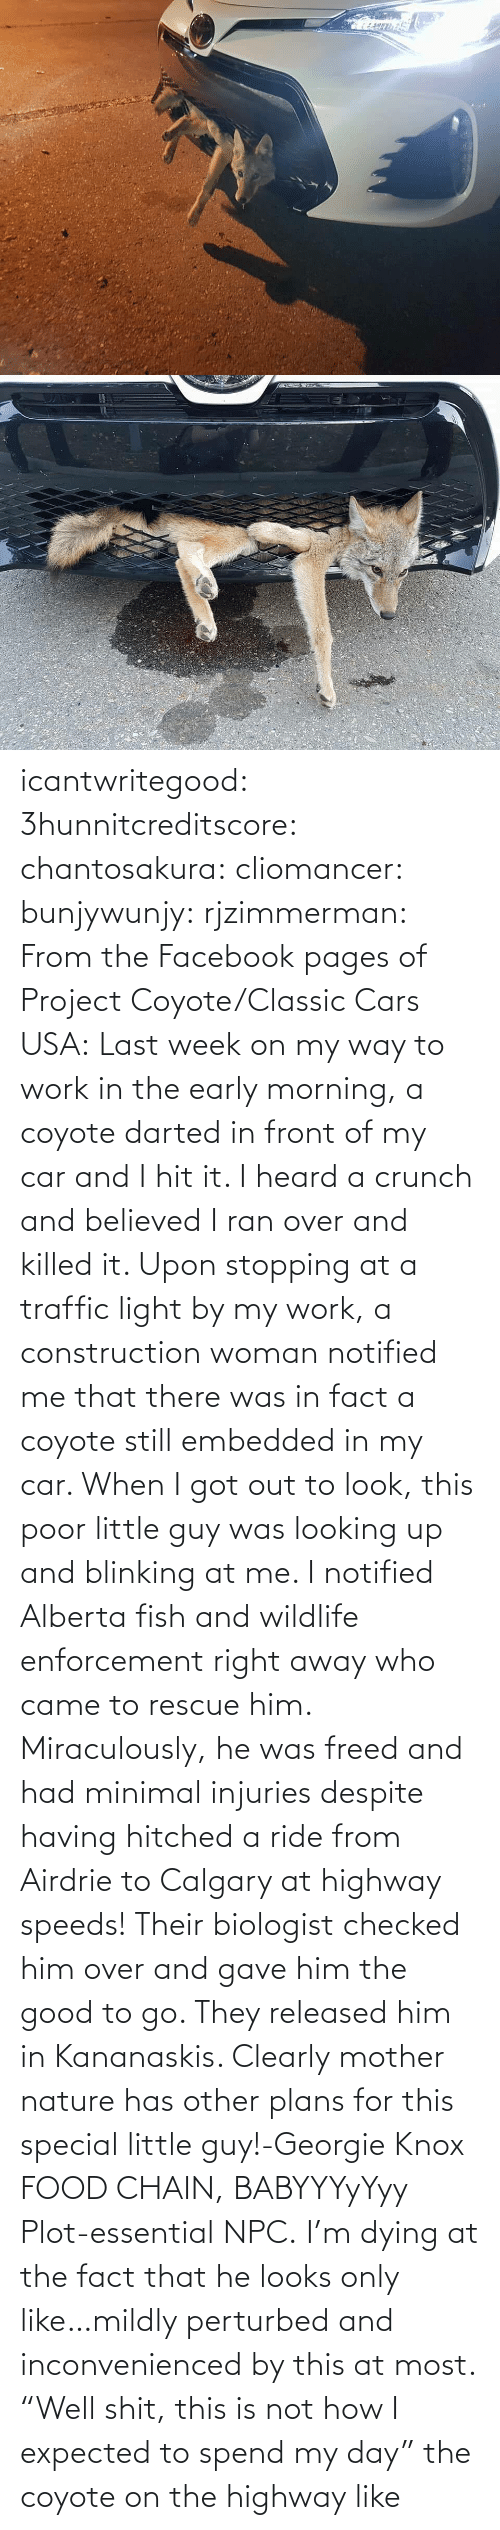 "pages: icantwritegood: 3hunnitcreditscore:  chantosakura:  cliomancer:  bunjywunjy:  rjzimmerman:  From the Facebook pages of Project Coyote/Classic Cars USA: Last week on my way to work in the early morning, a coyote darted in front of my car and I hit it. I heard a crunch and believed I ran over and killed it. Upon stopping at a traffic light by my work, a construction woman notified me that there was in fact a coyote still embedded in my car. When I got out to look, this poor little guy was looking up and blinking at me. I notified Alberta fish and wildlife enforcement right away who came to rescue him. Miraculously, he was freed and had minimal injuries despite having hitched a ride from Airdrie to Calgary at highway speeds! Their biologist checked him over and gave him the good to go. They released him in Kananaskis. Clearly mother nature has other plans for this special little guy!-Georgie Knox  FOOD CHAIN, BABYYYyYyy  Plot-essential NPC.   I'm dying at the fact that he looks only like…mildly perturbed and inconvenienced by this at most.    ""Well shit, this is not how I expected to spend my day""  the coyote on the highway like"